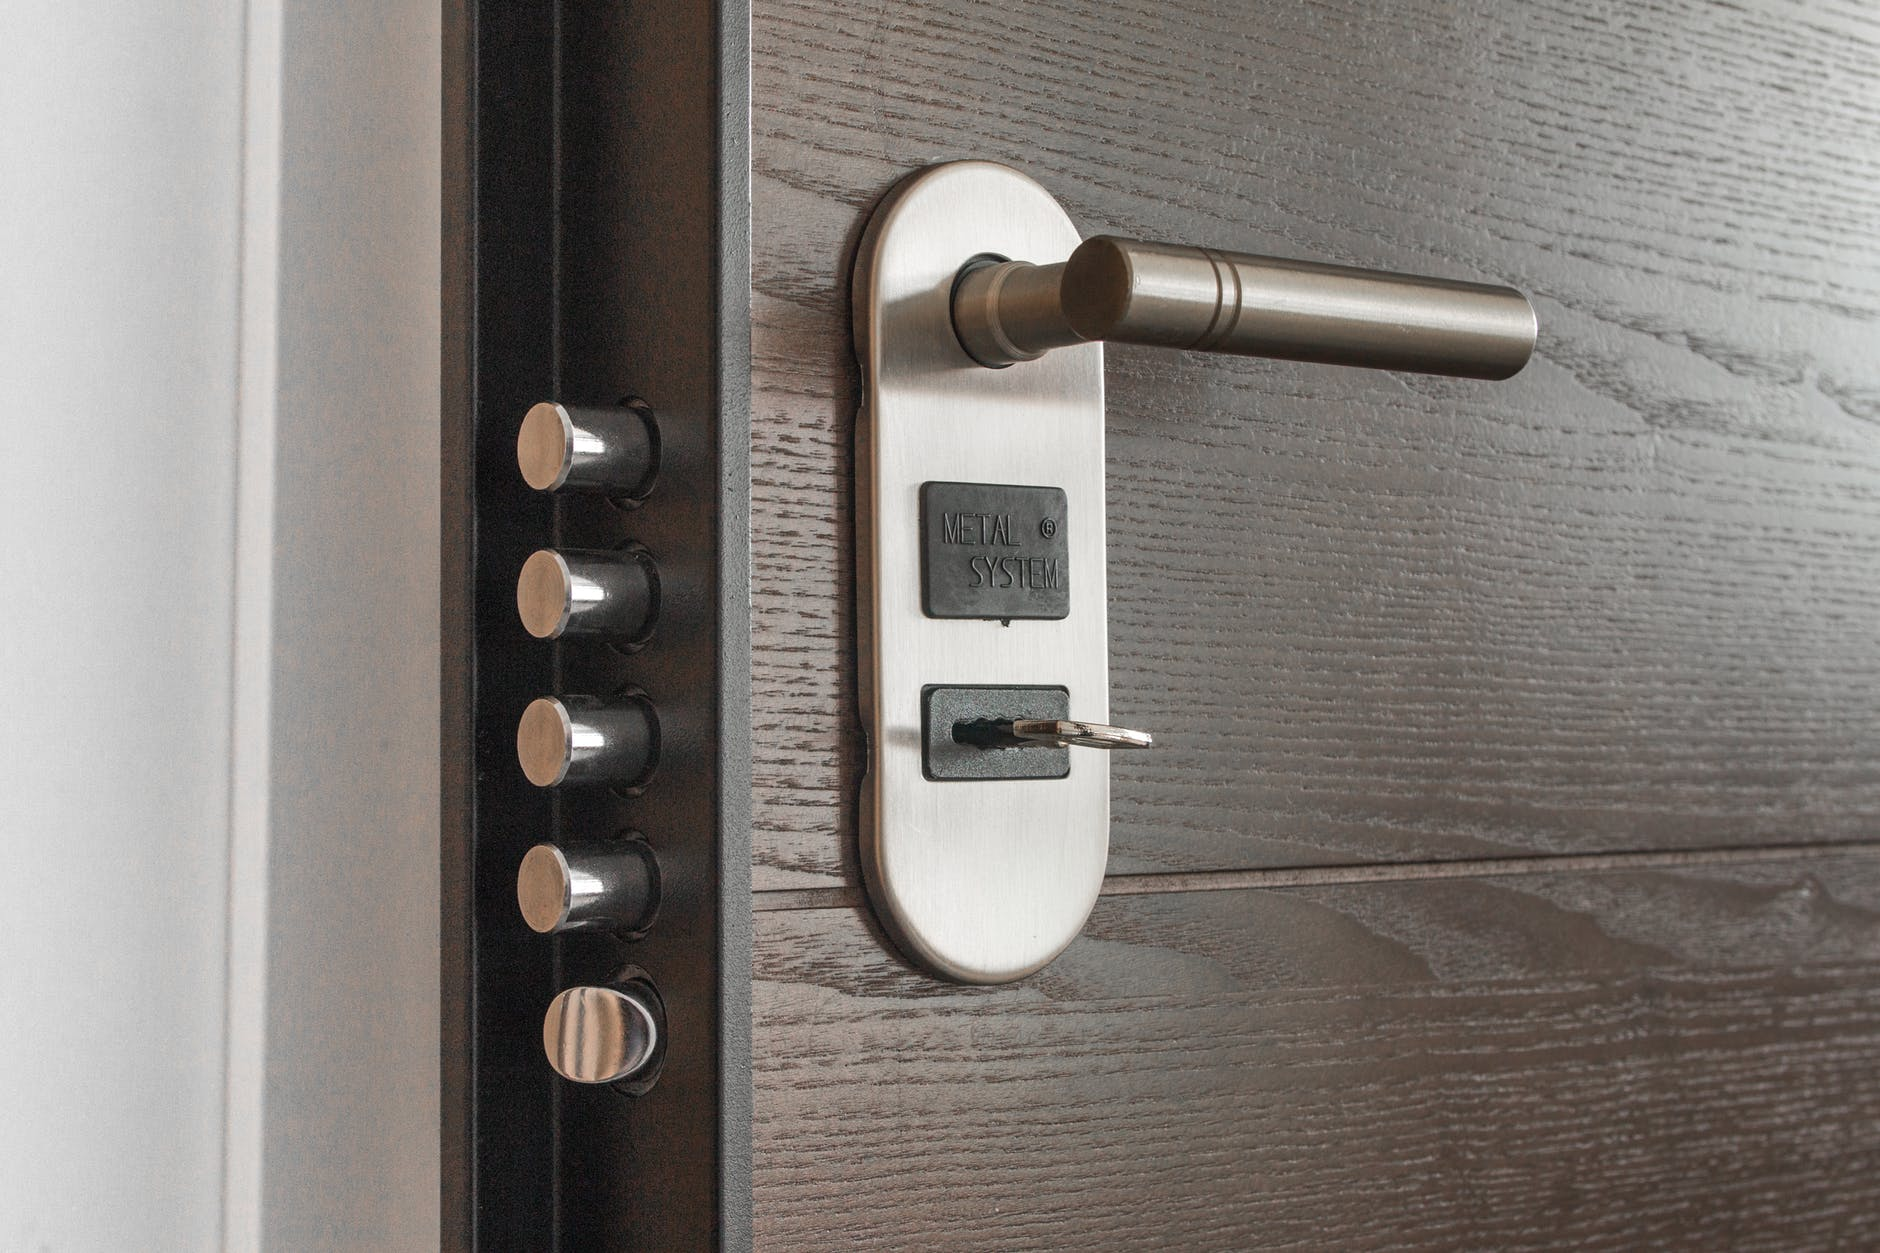 locked door, illustrating security for financial marketing and websites